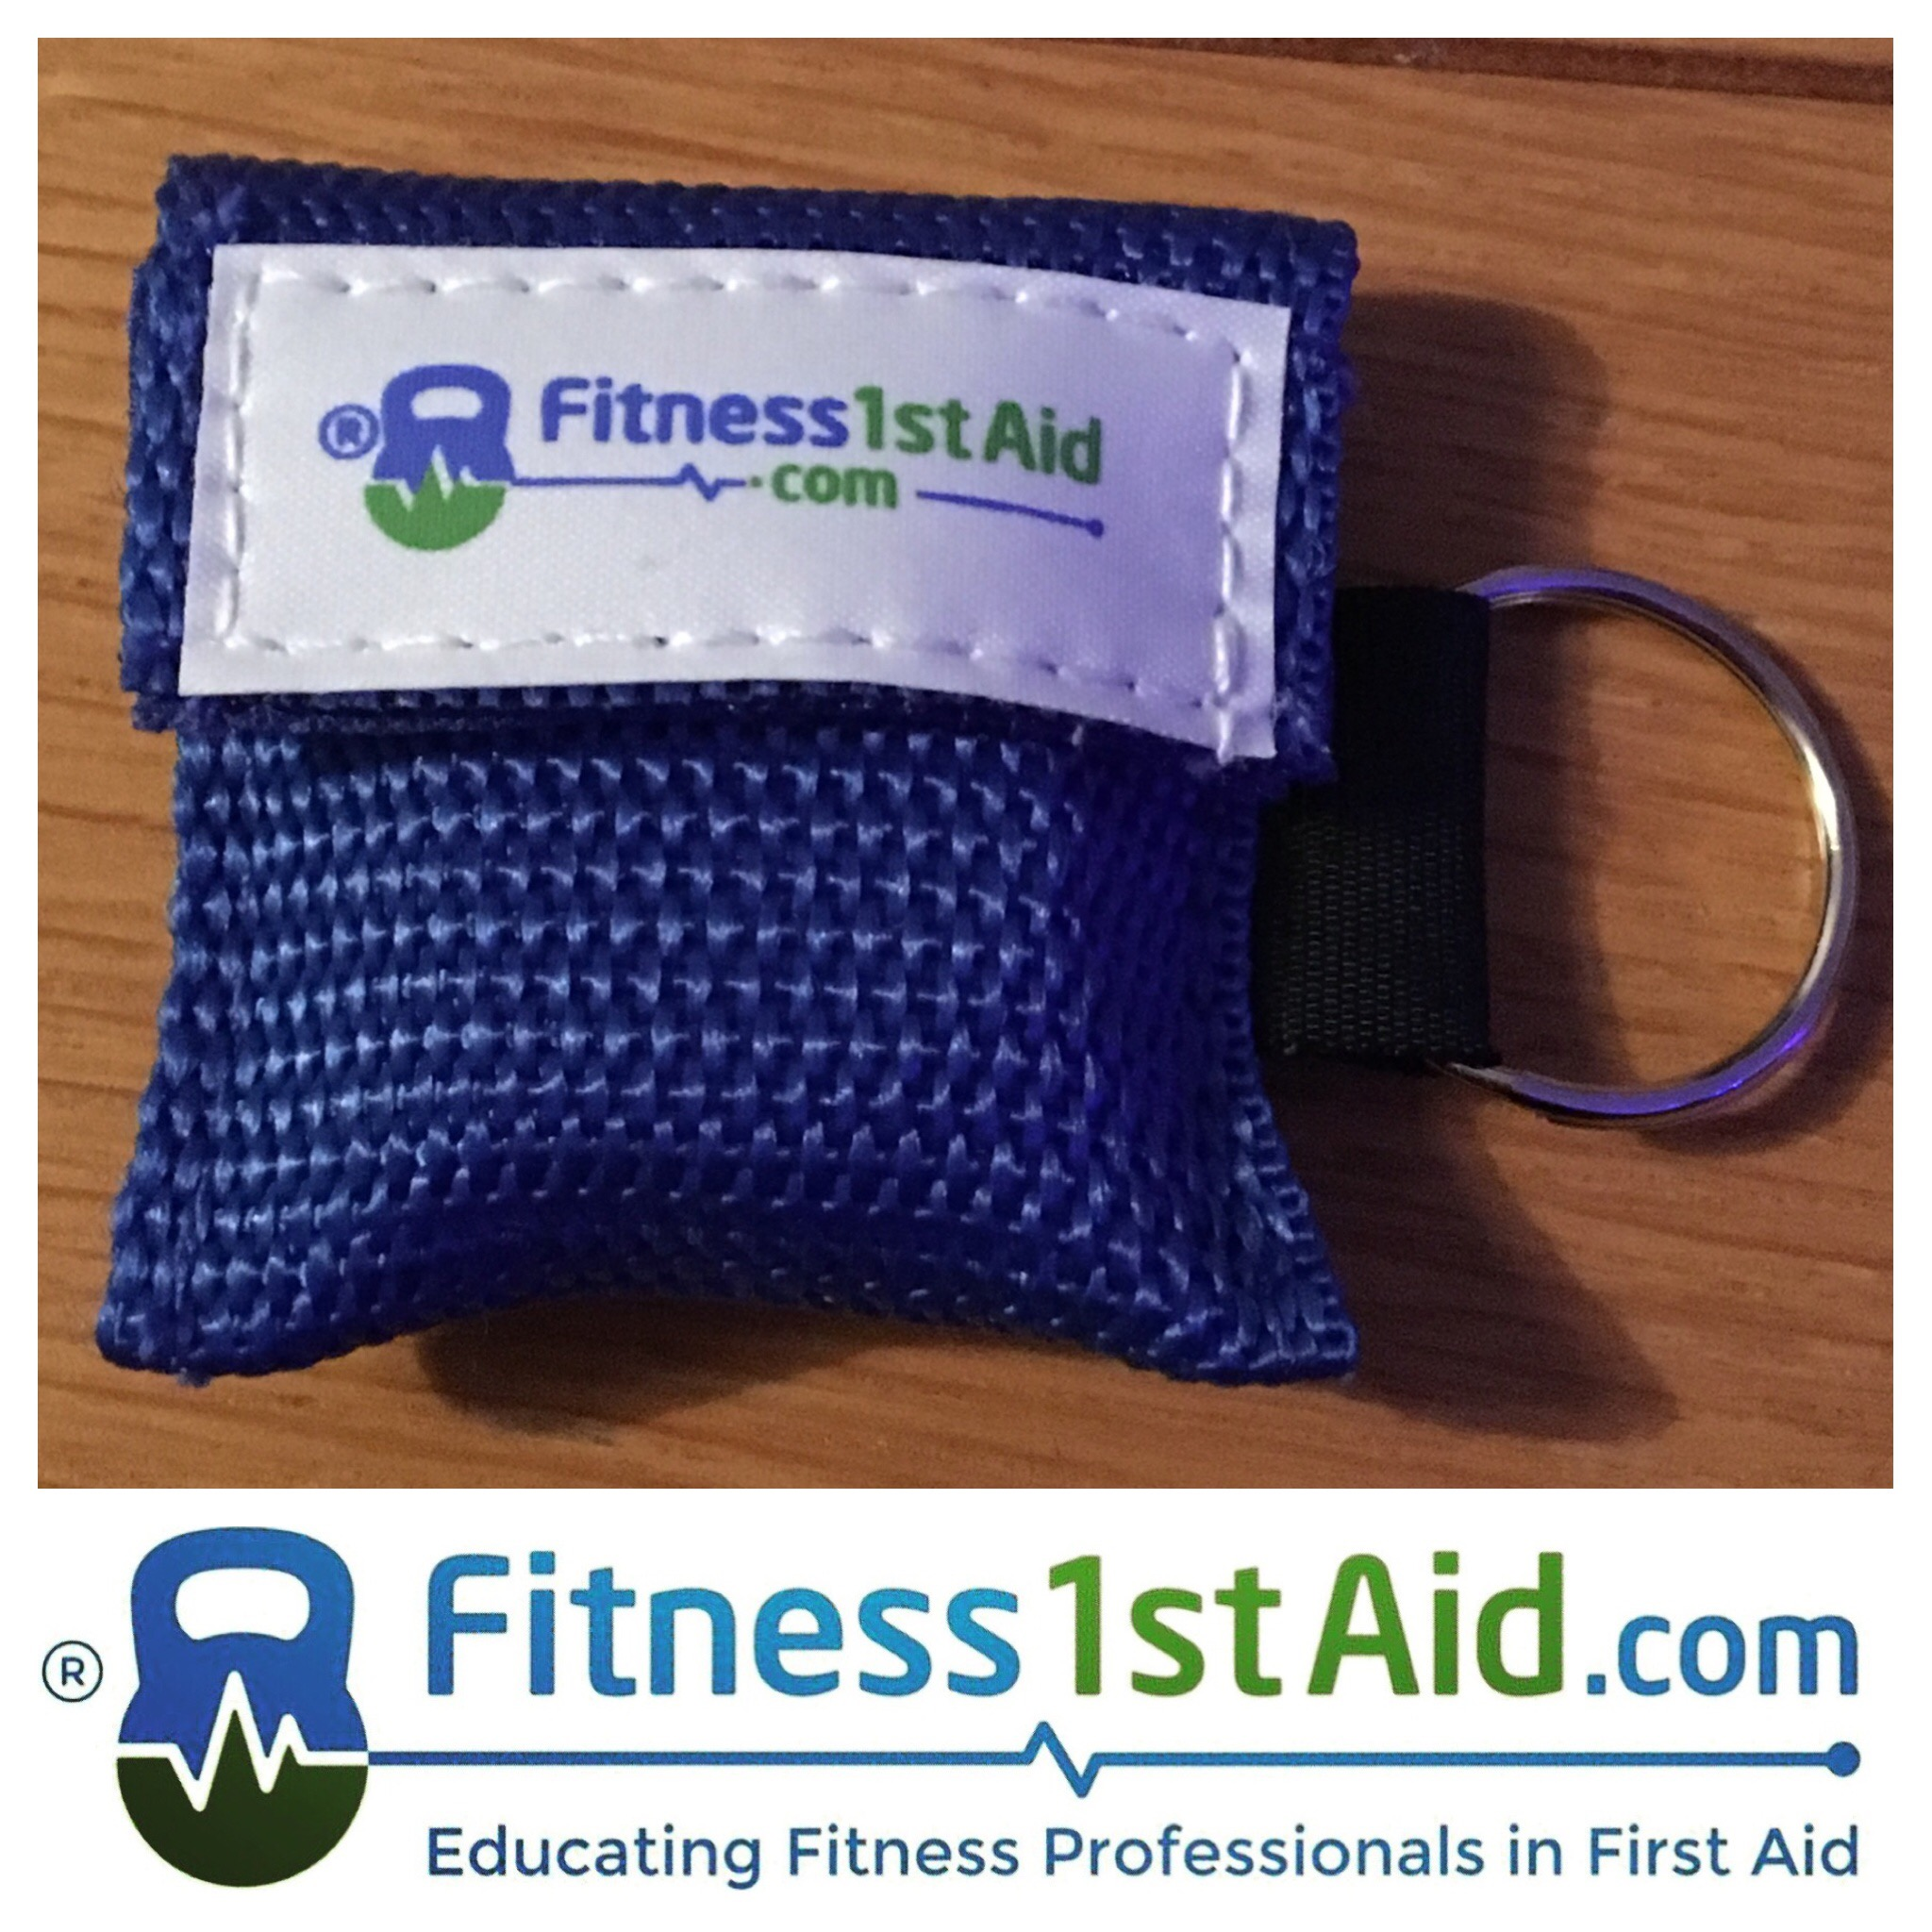 fitness1staid.com CPR Face Mask Shield with Keyring